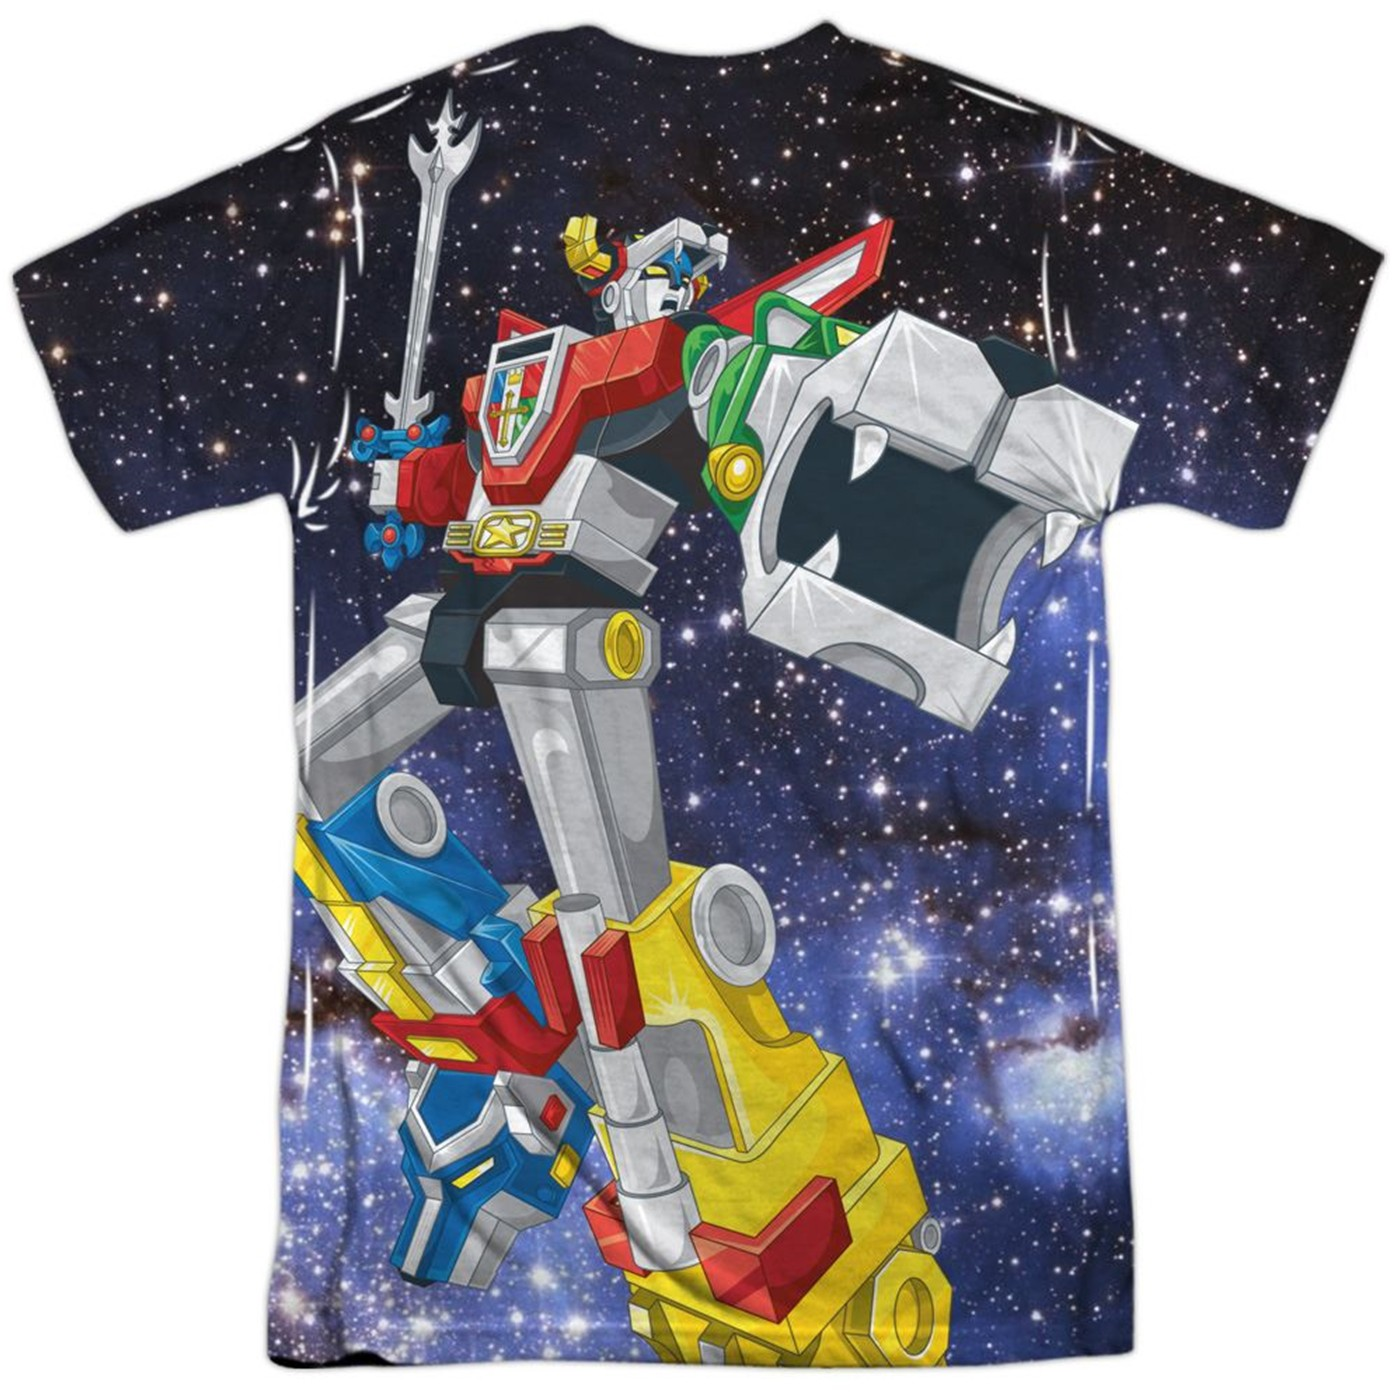 Voltron Space Defender Front and Back Sublimated T-Shirt